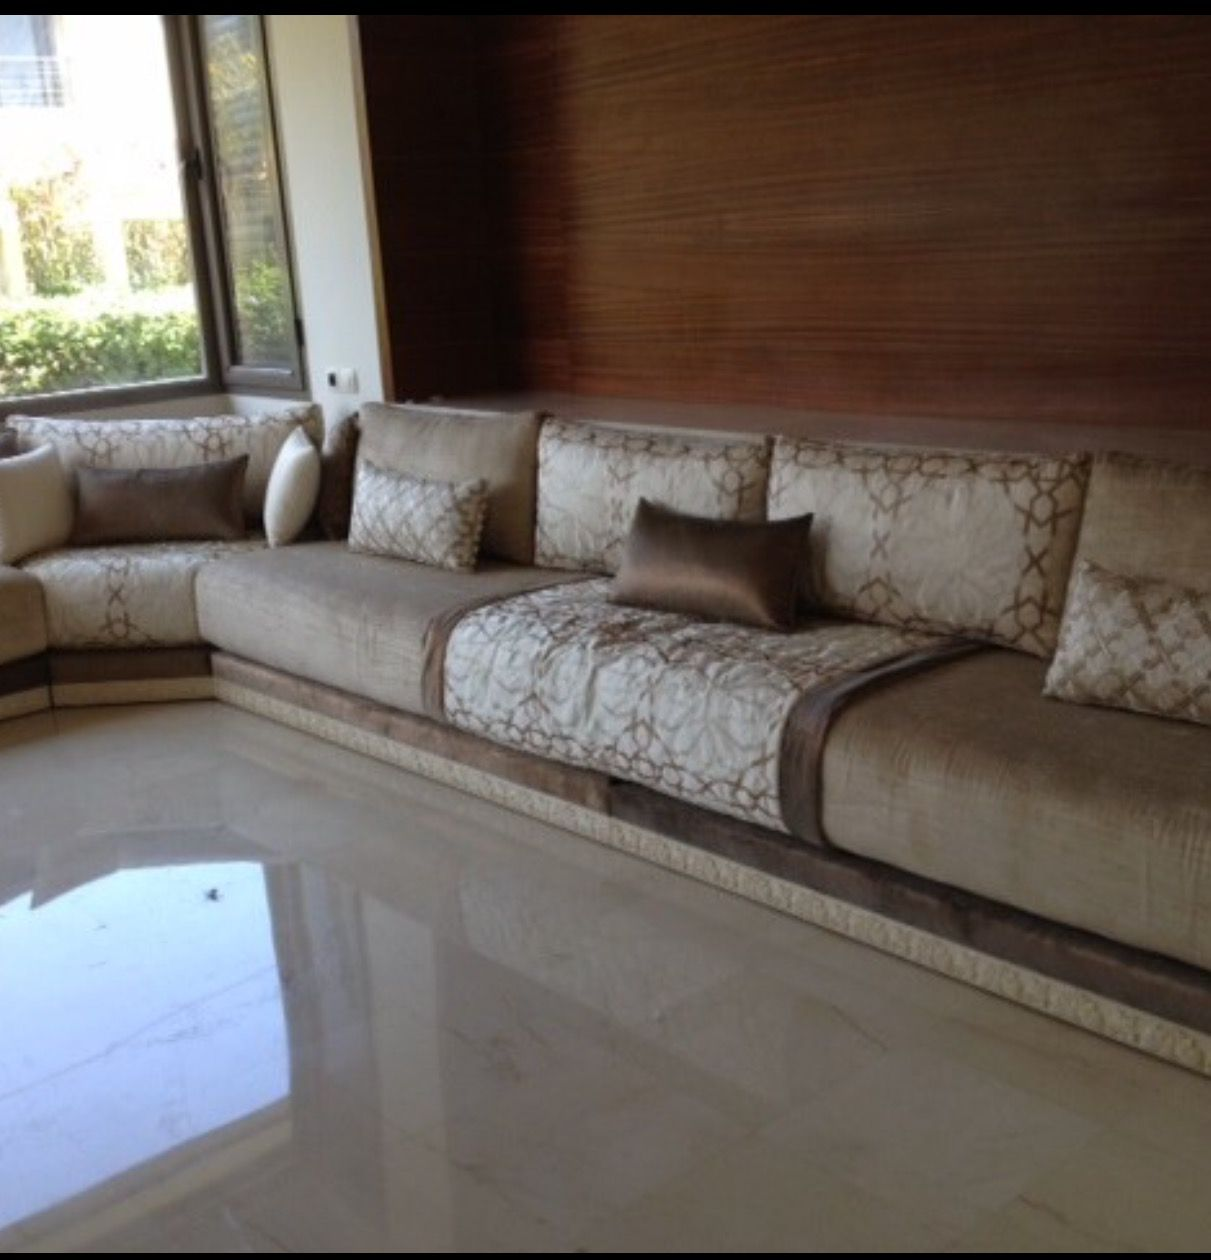 Sofa Salon Marocain Seddari The Moroccan Sofa الصالون المغربي Pinterest